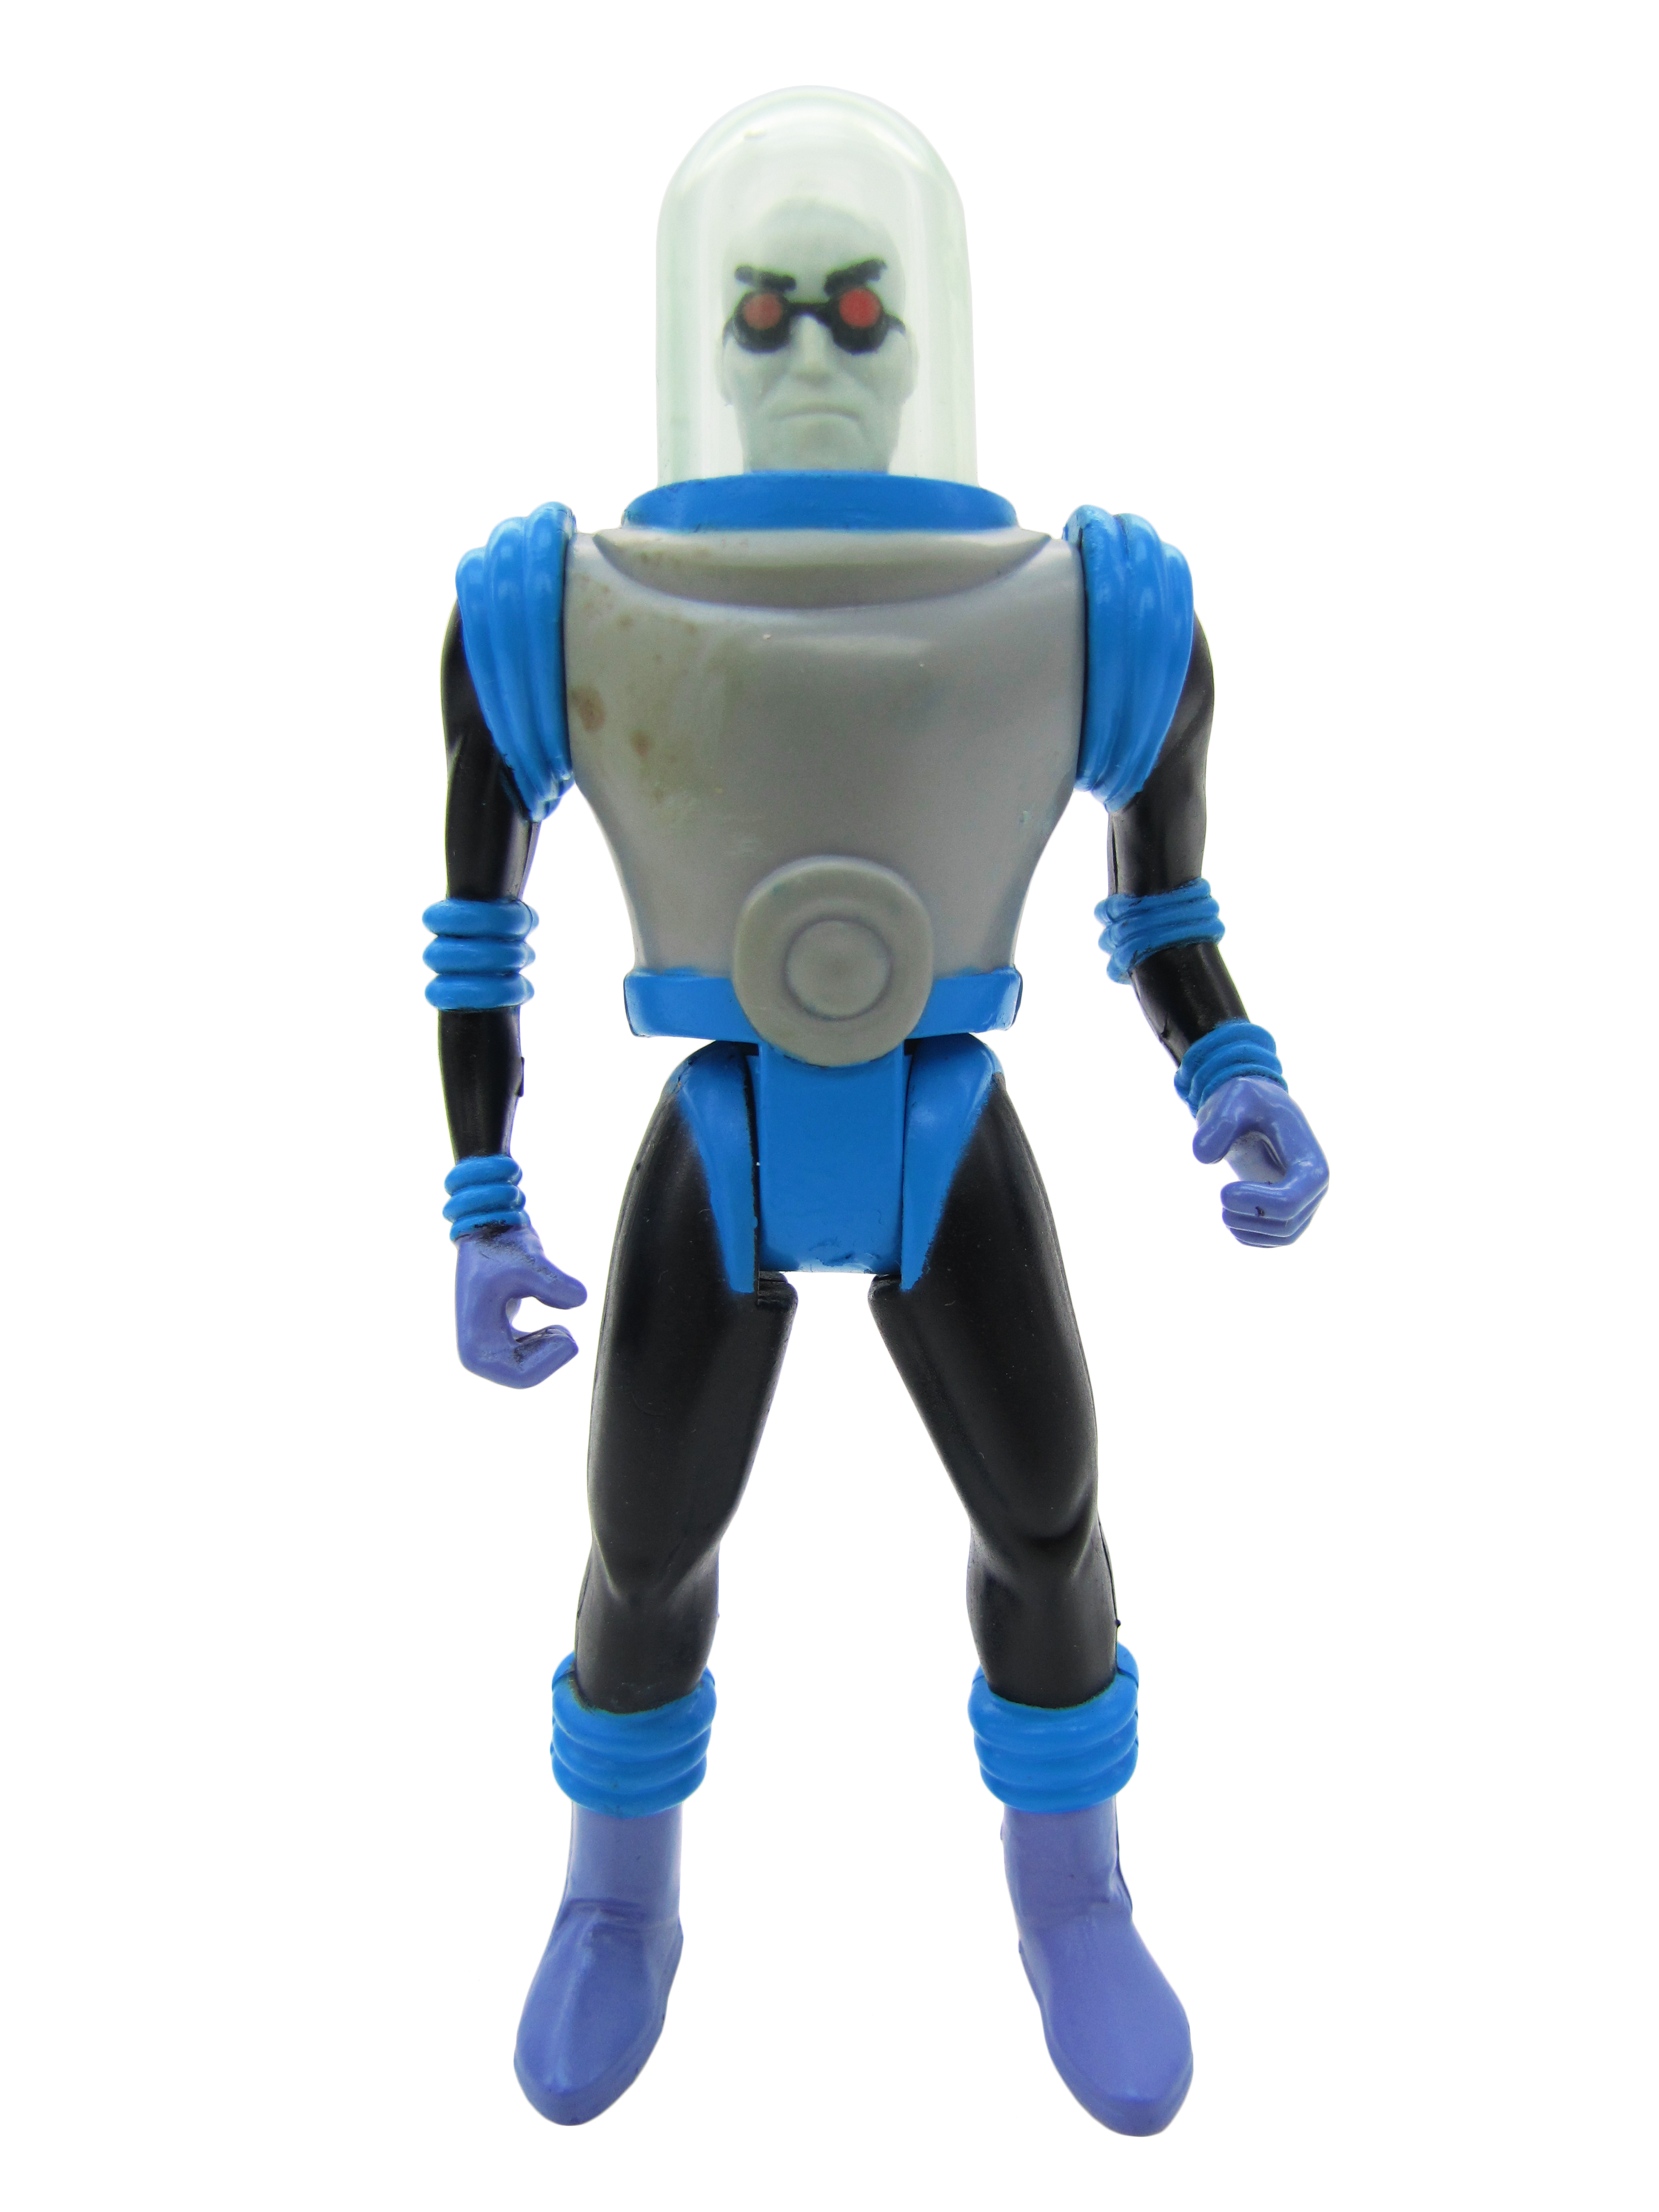 1993 Batman The Animated Series MR. FREEZE Mint